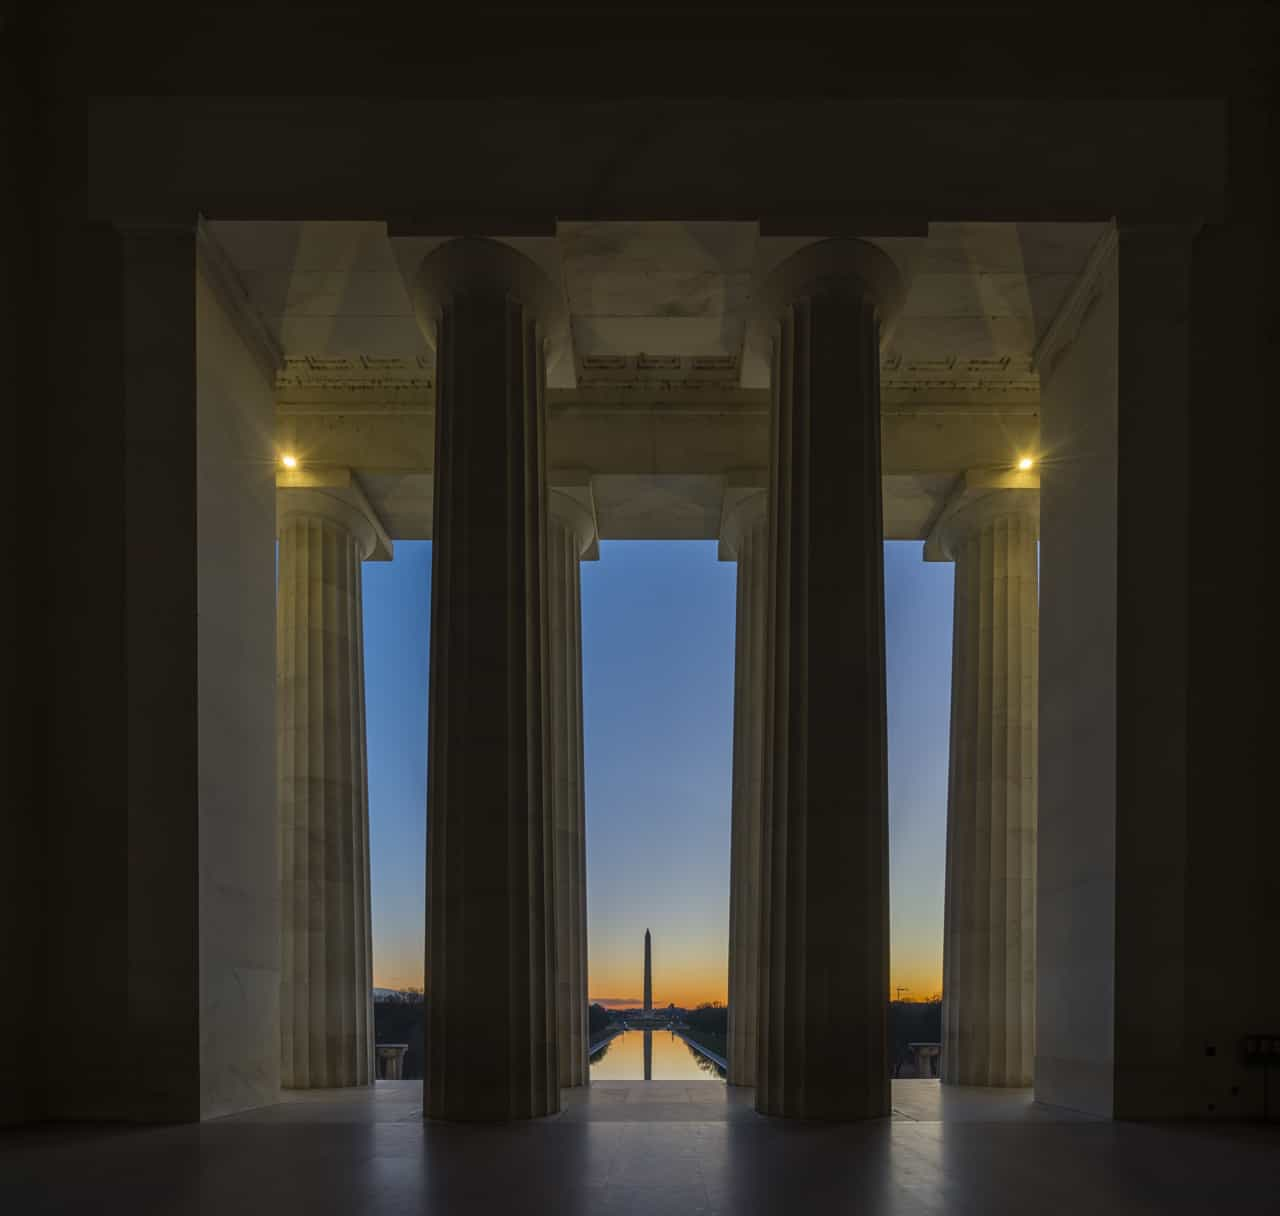 walking-tour-washington-dc-Lincoln-memorial